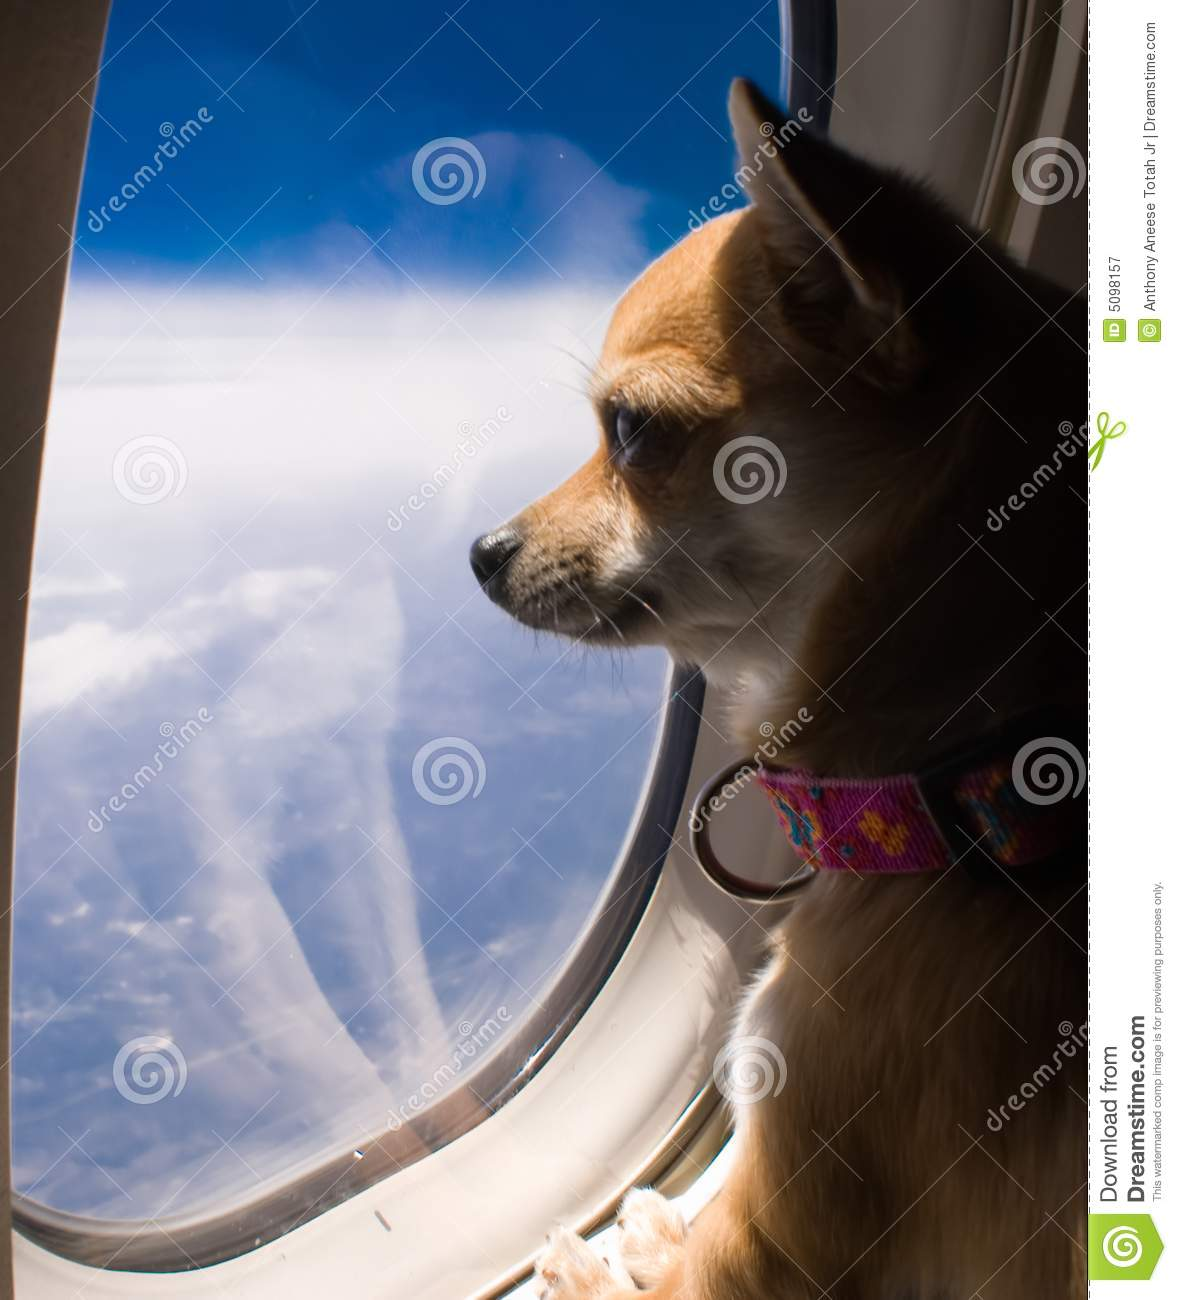 Dog looking out airplane window stock image image of for Small dogs on airplanes